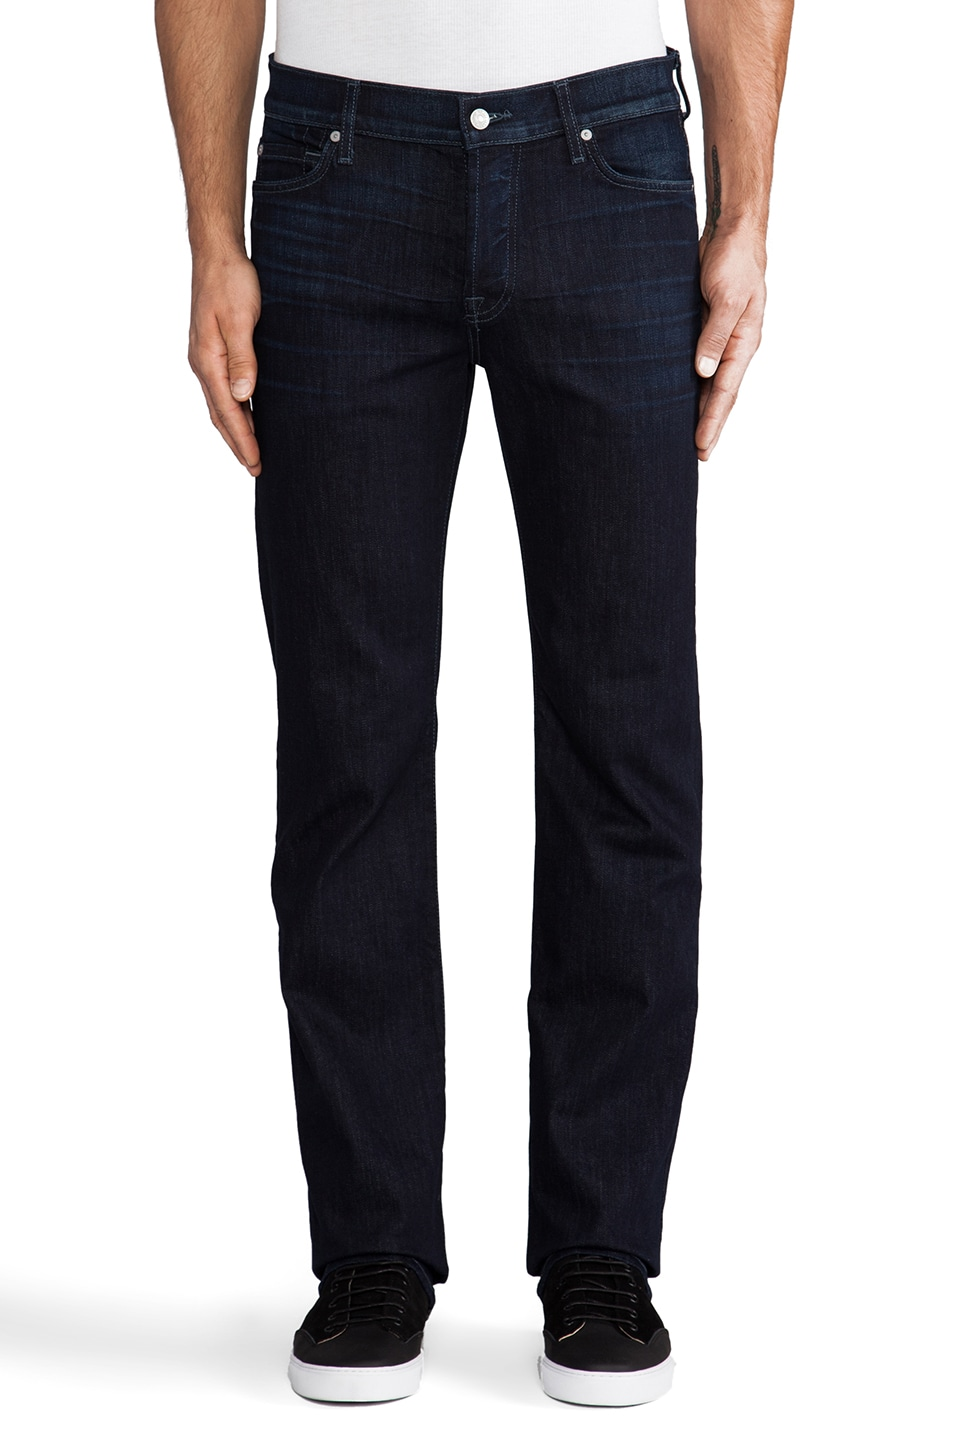 7 For All Mankind Standard in Midnight Waters